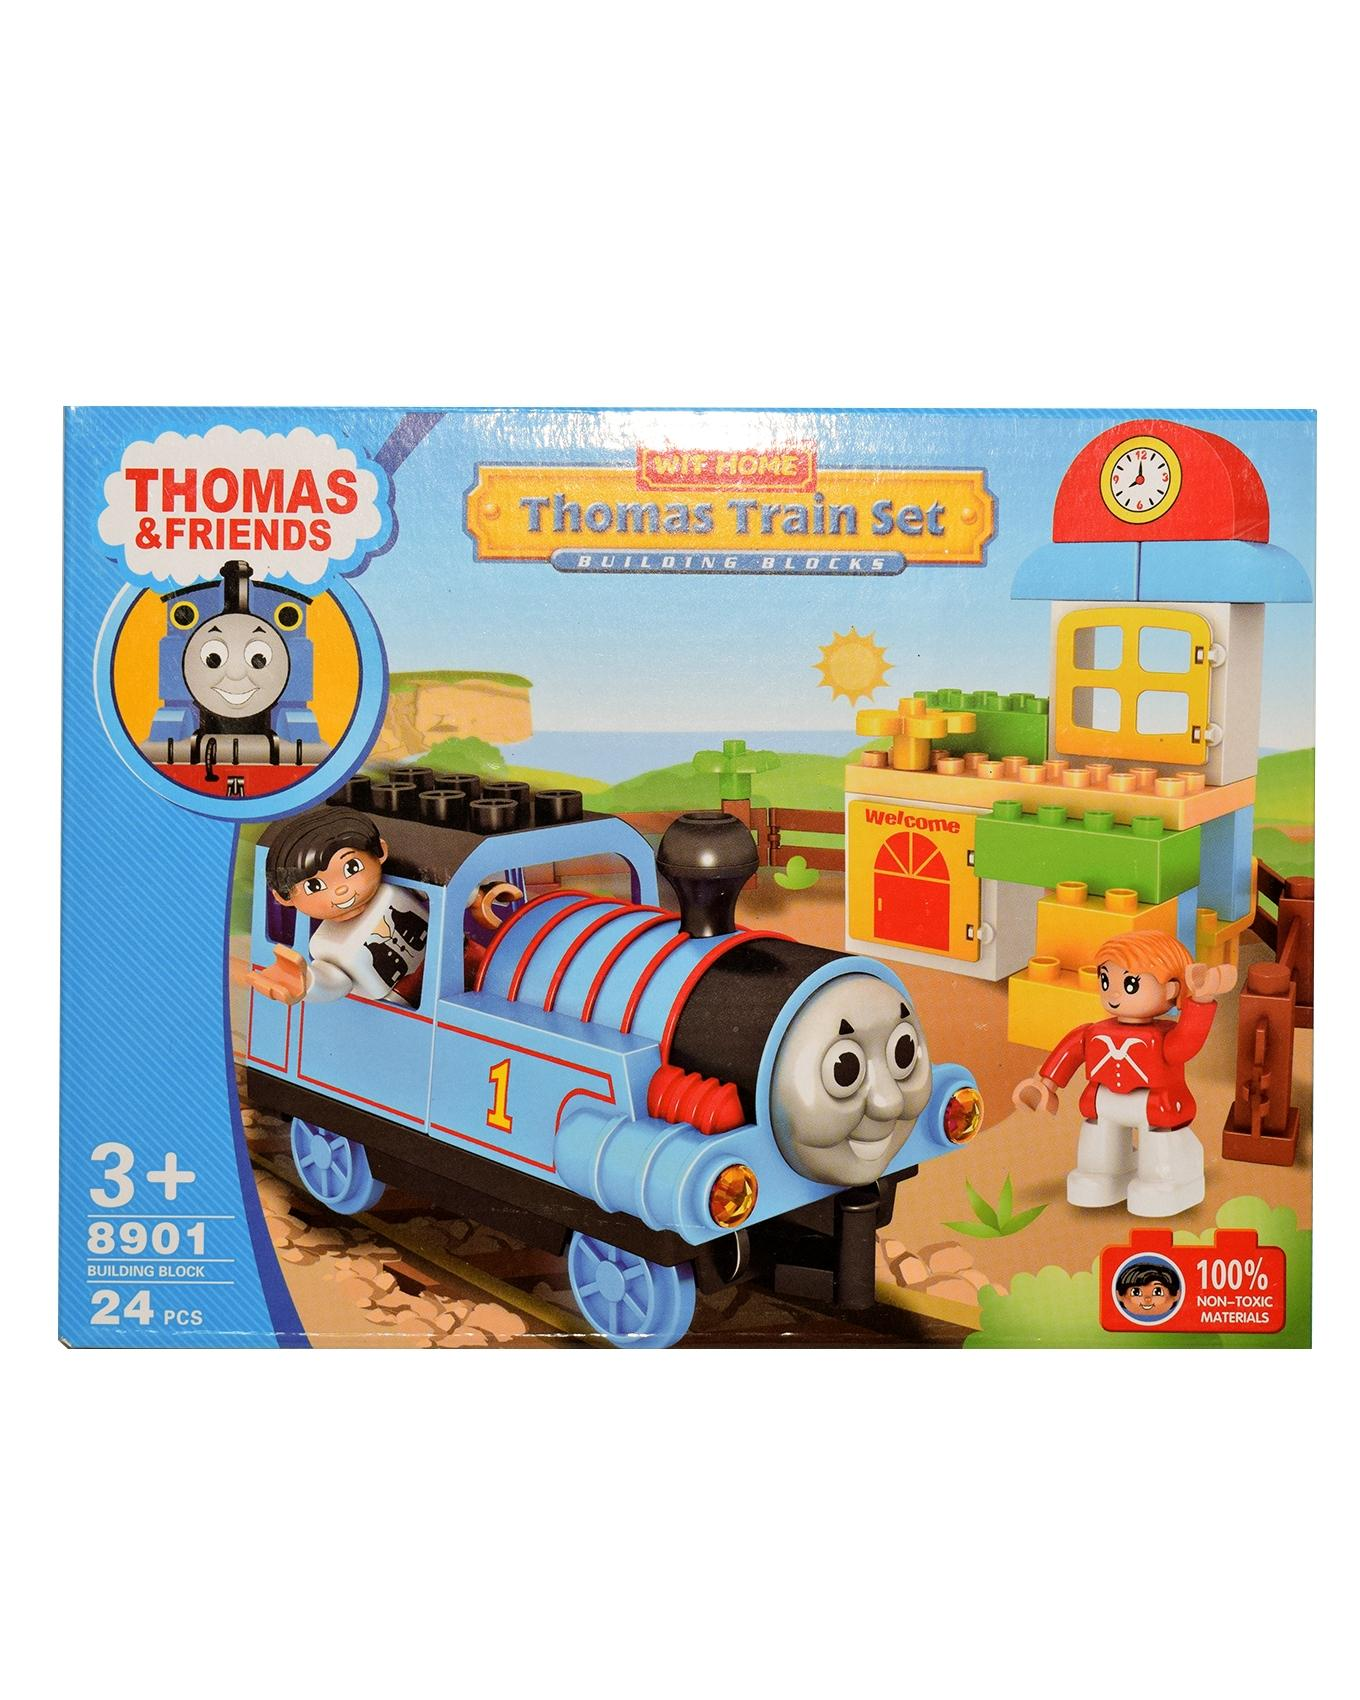 Toy Thomas Train Set